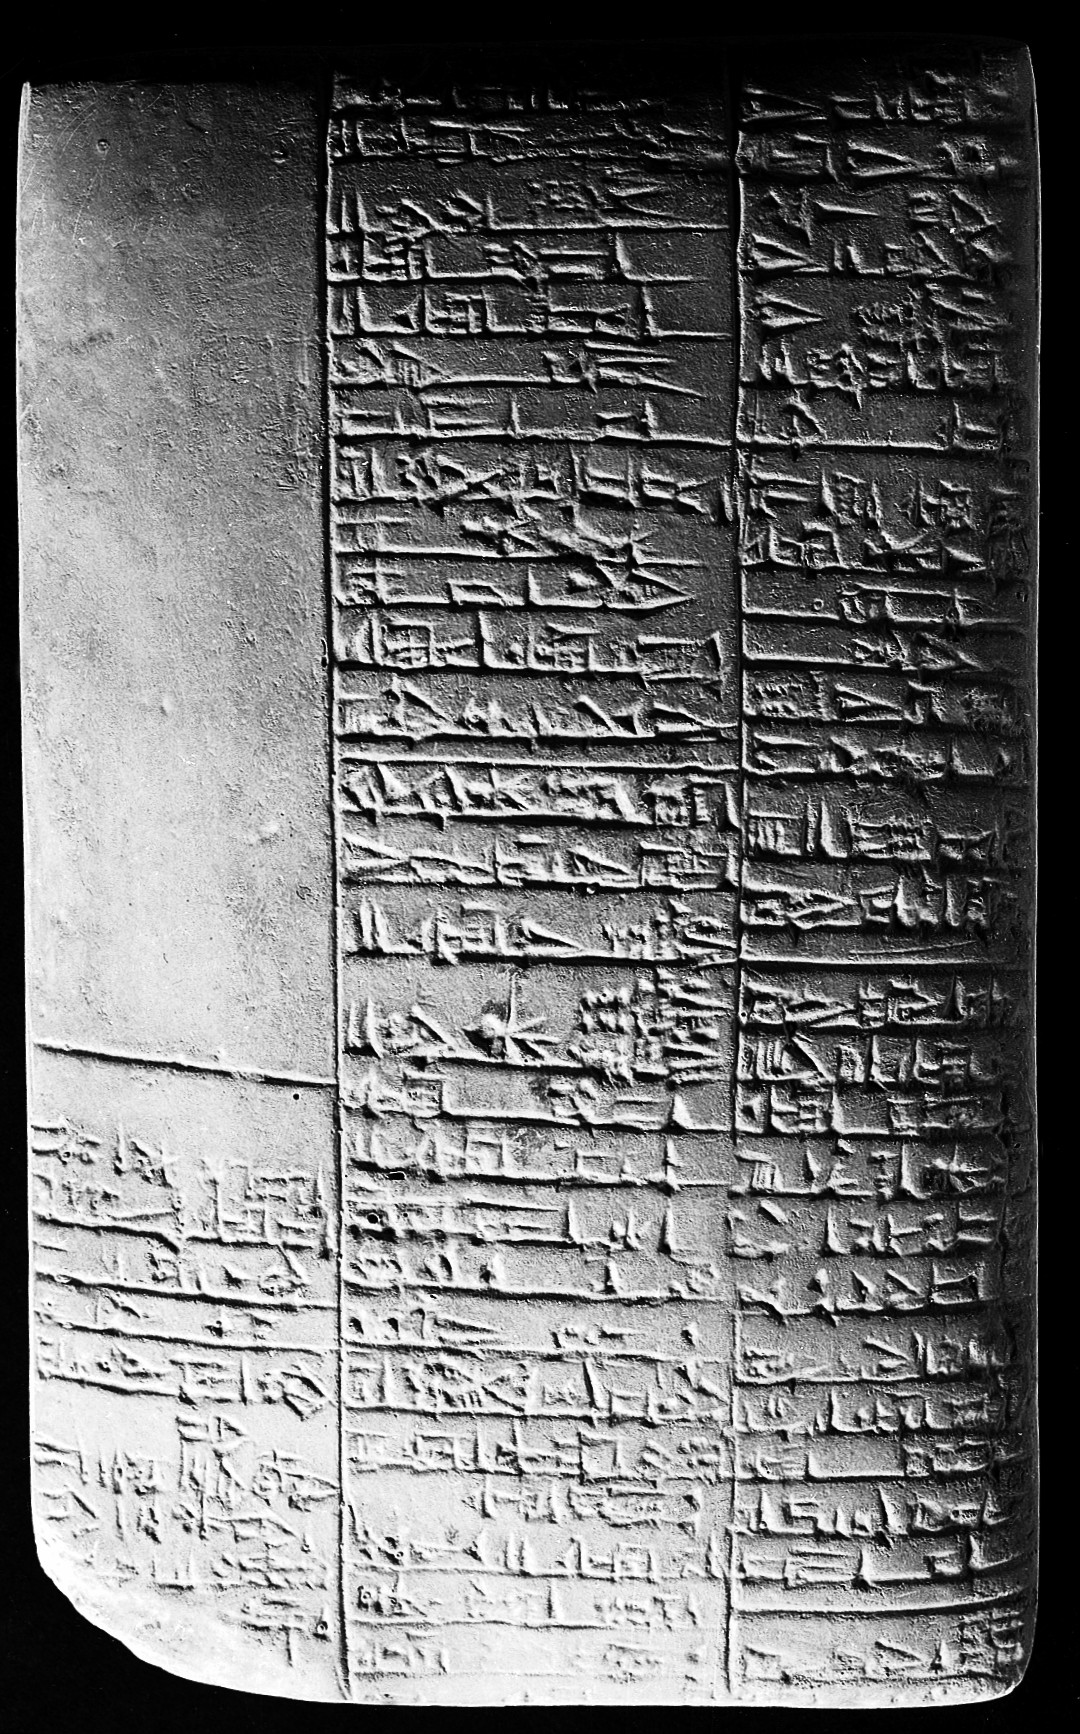 Sumerian cuneiform medical clay tablet